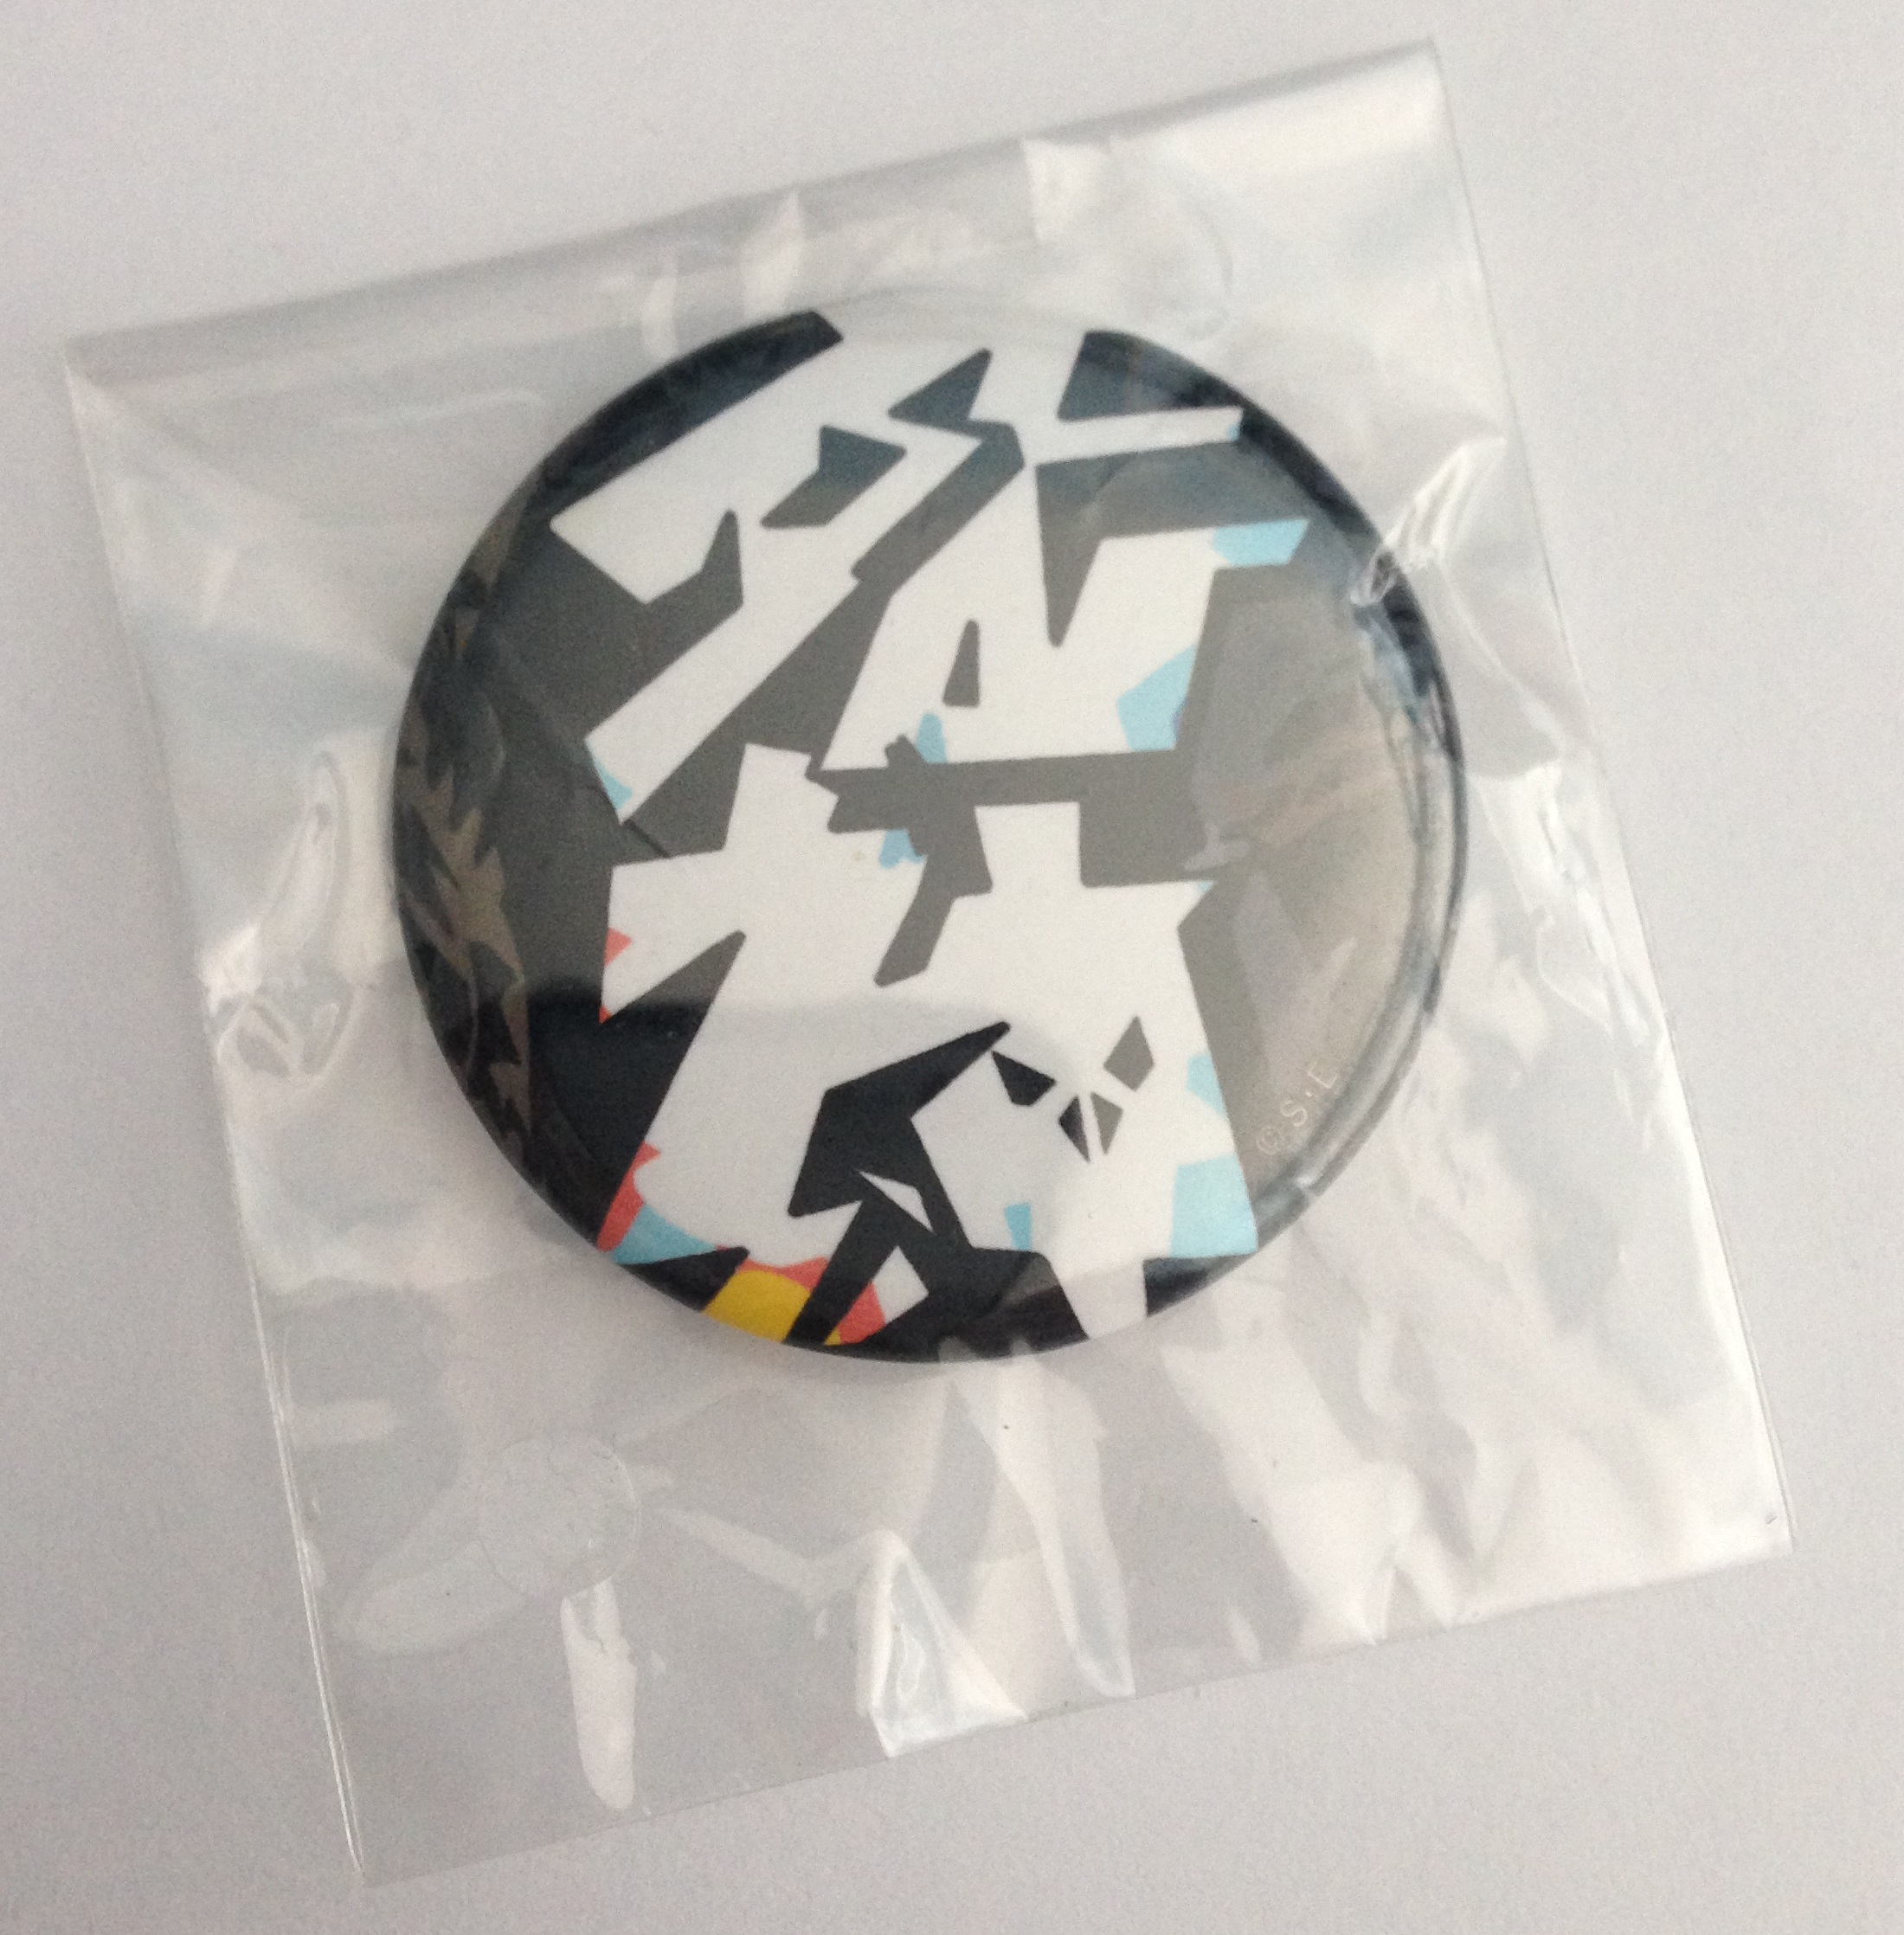 square_enix badge jupiter subarashiki_kono_sekai subarashiki_kono_sekai_pin_badge_collection_vol._1